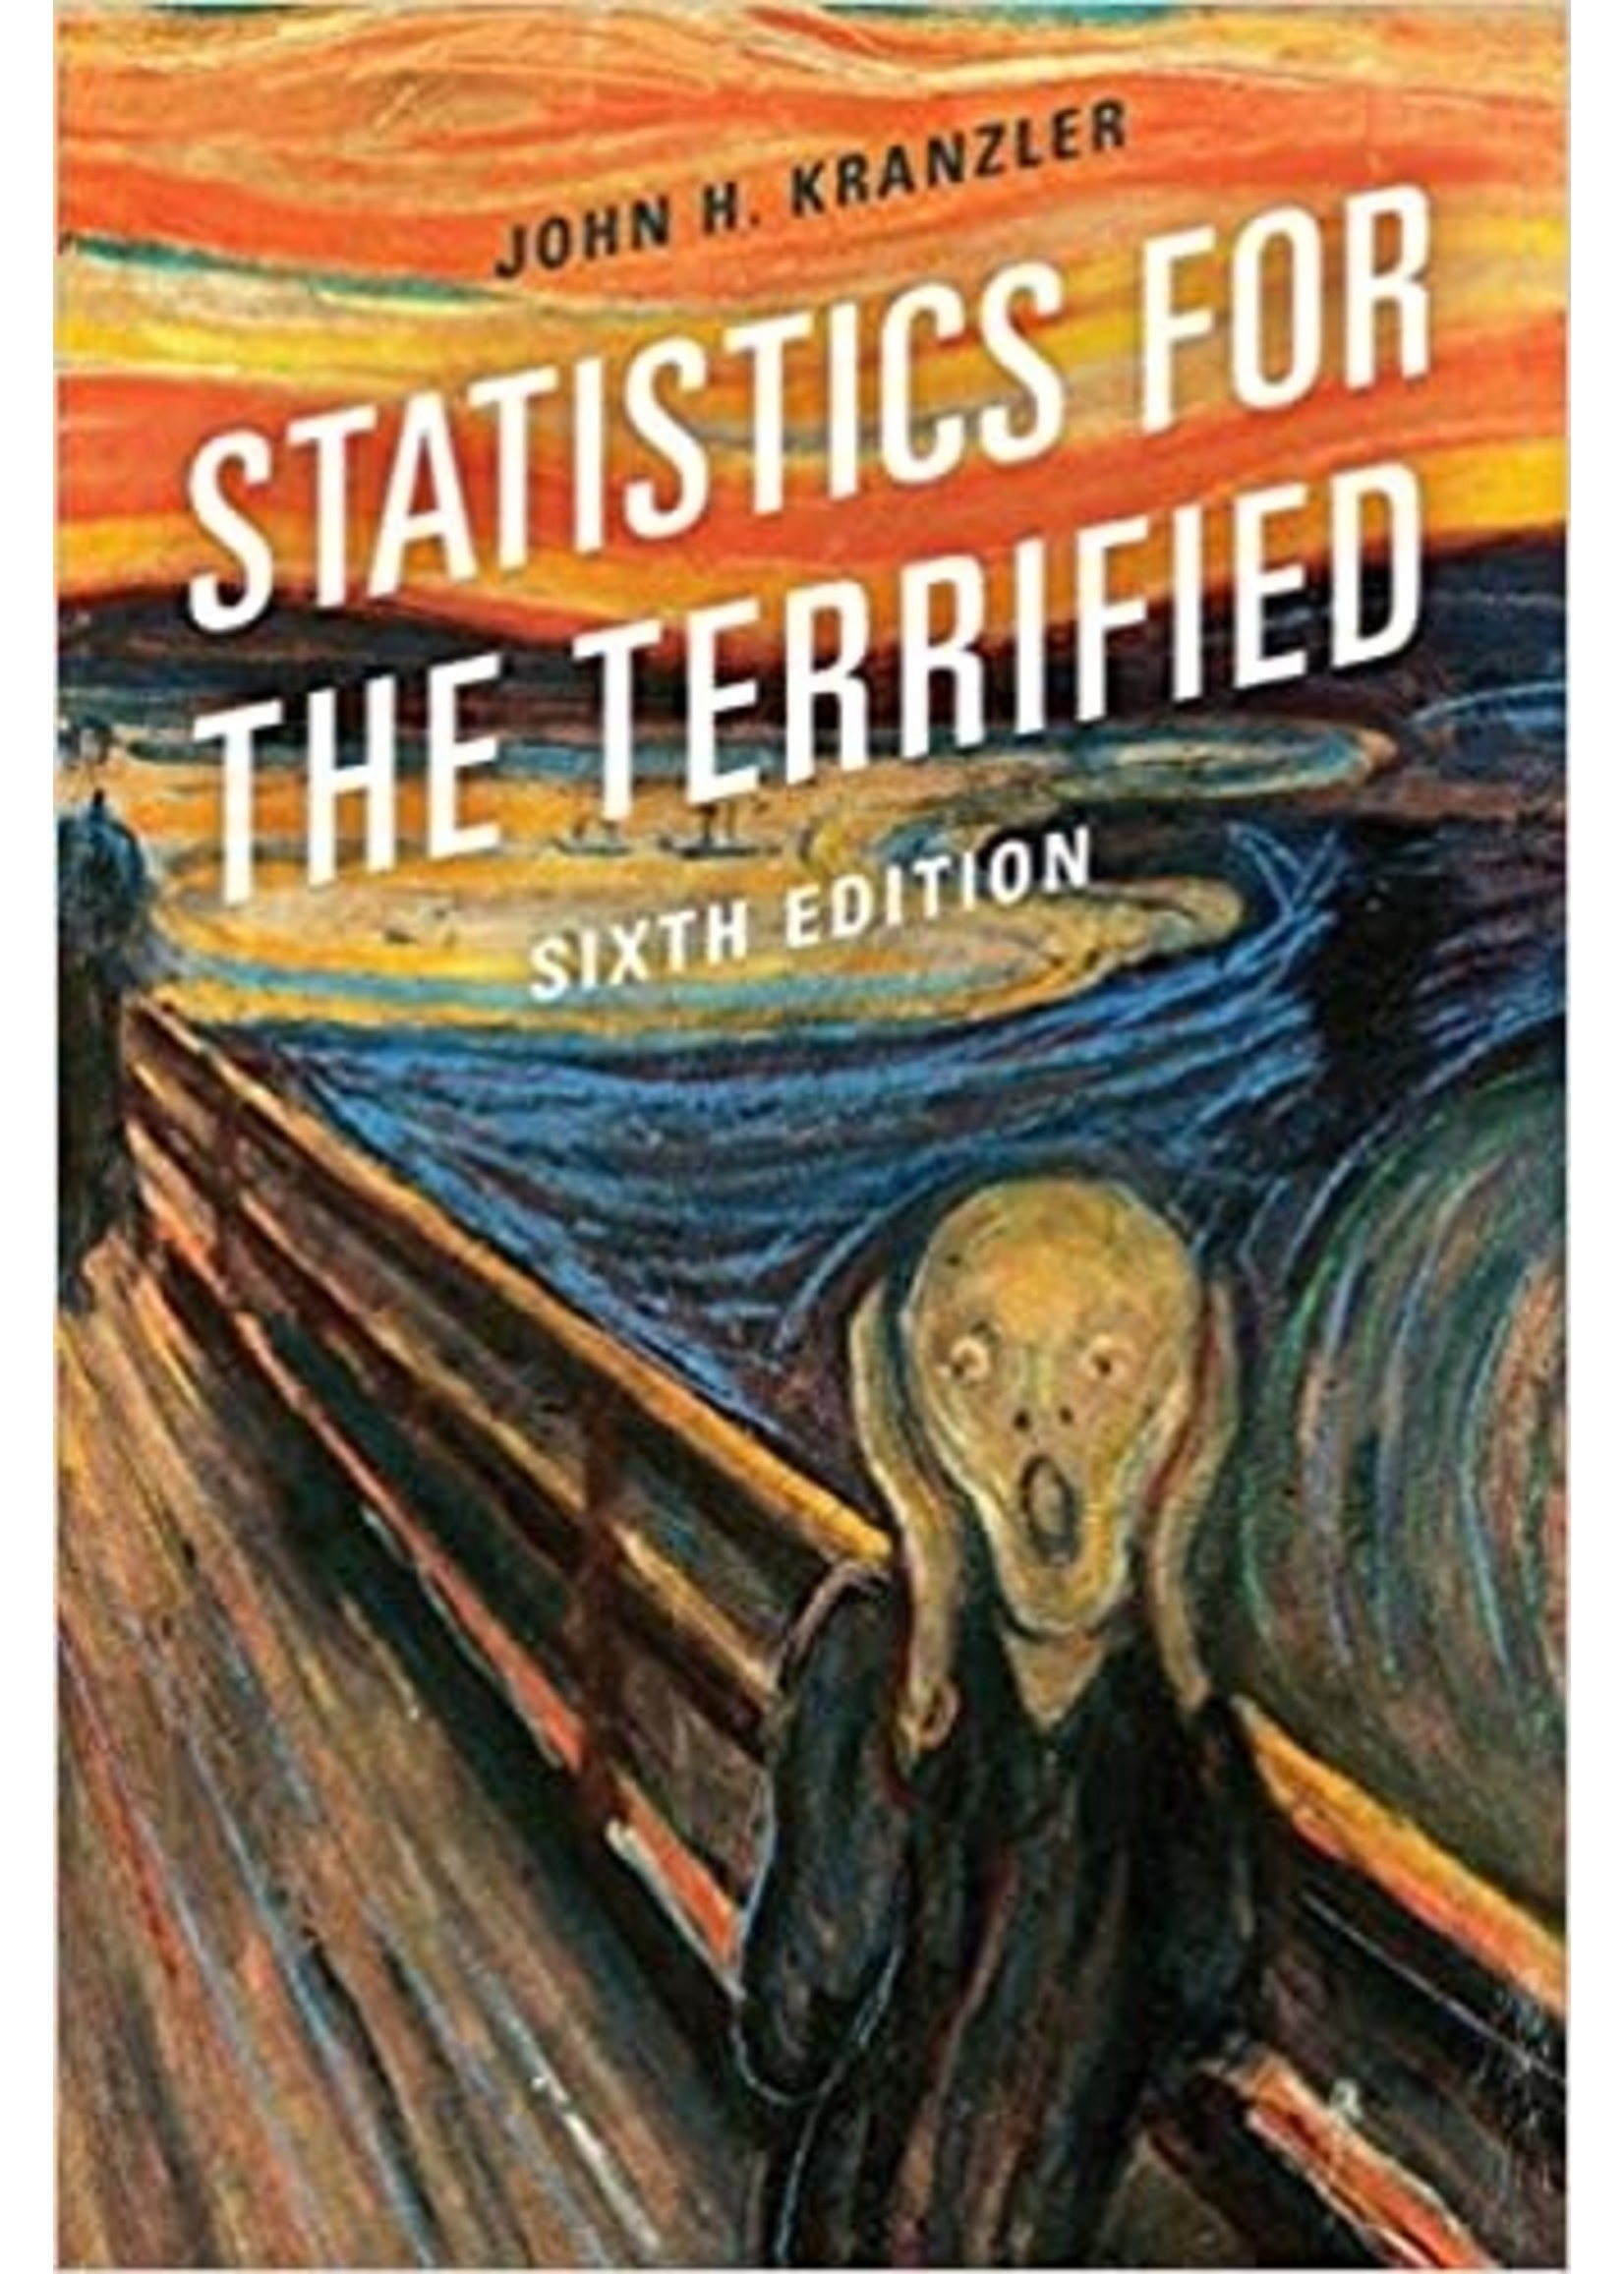 PSYC300 STATISTICS FOR THE TERRIFIED